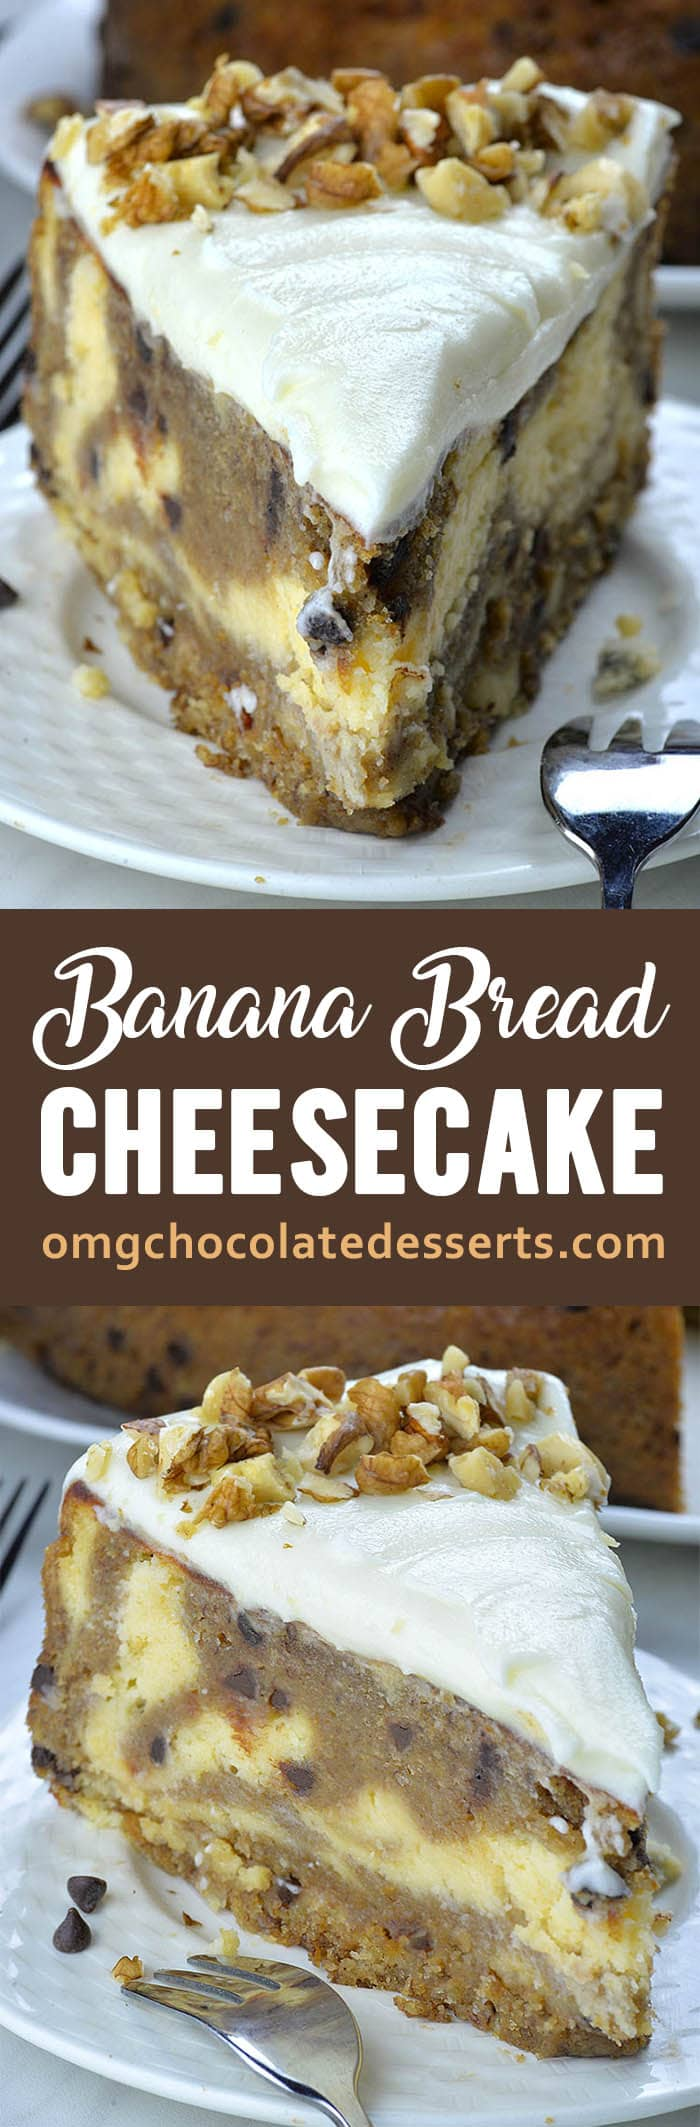 This Banana Bead Cheesecake is such a fun alternative to traditional cheesecake and banana bread. And this two delicacies baked together makes one show-stopper dessert!